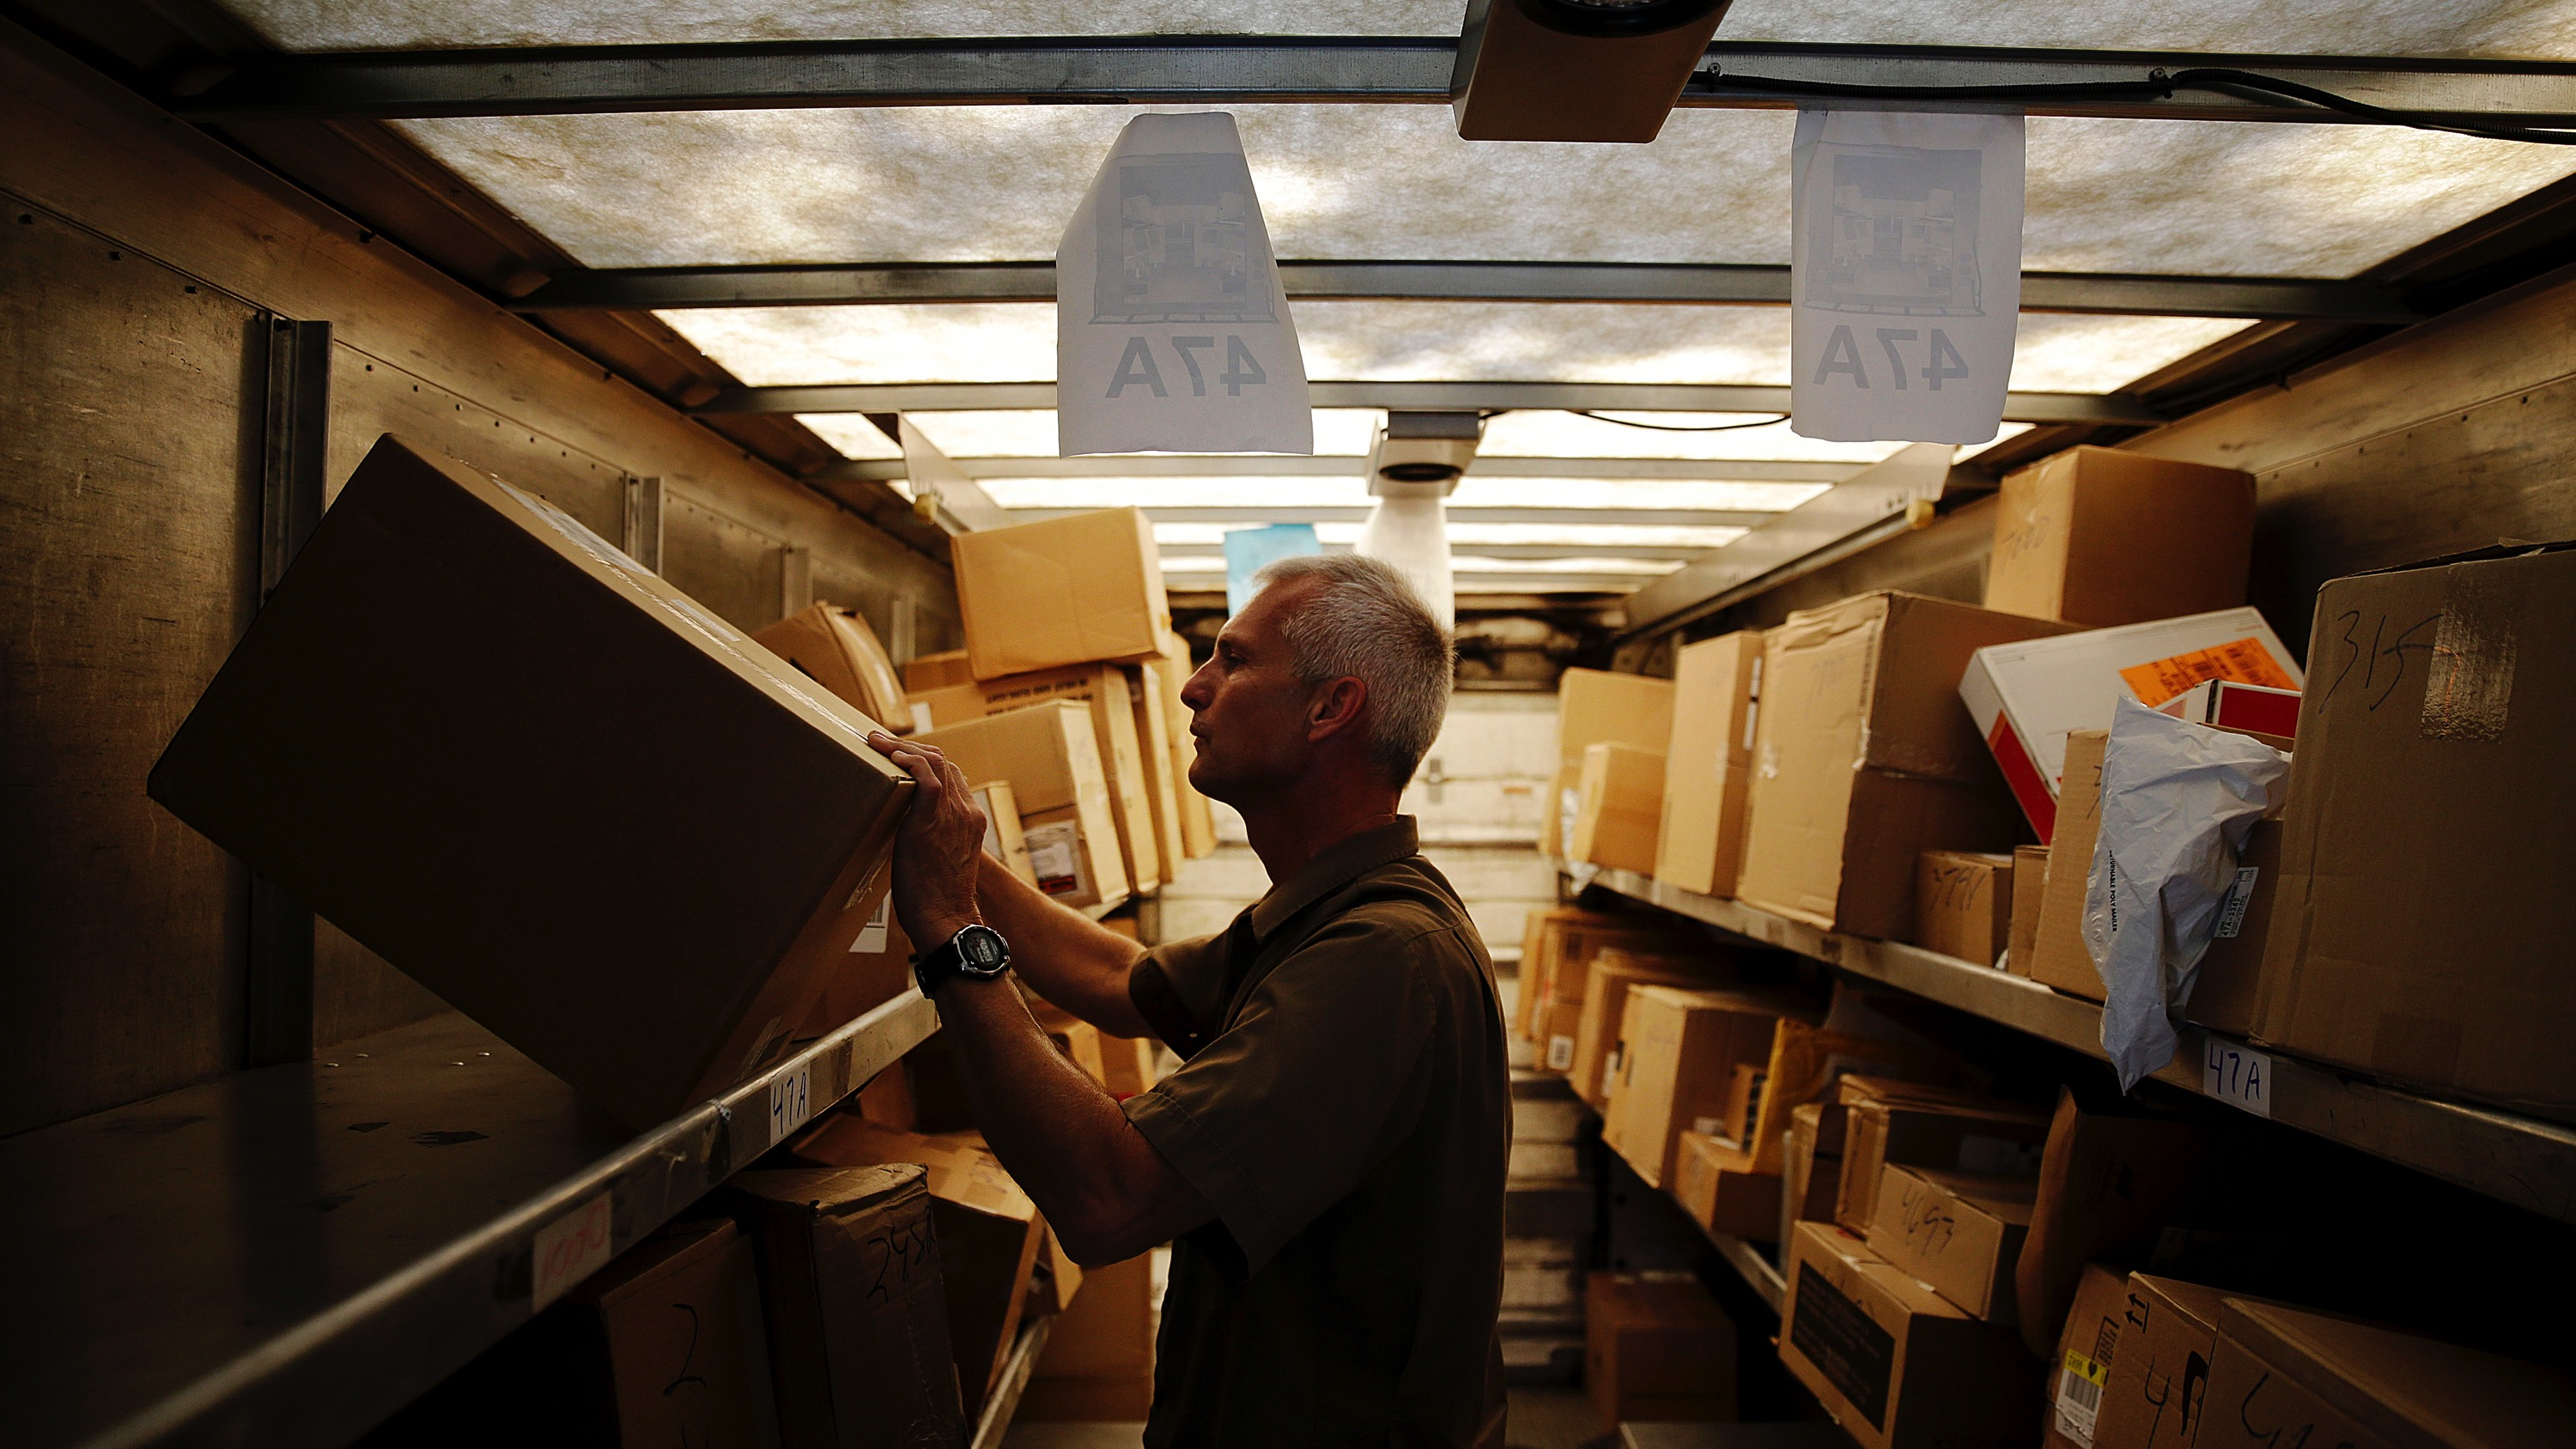 In this June 20, 2014 photo, United Parcel Service driver Marty Thompson checks the information on boxes in the back of his truck while making a delivery in Cumming, Ga. UPS on Wednesday, Oct. 29, 2014 said it expects to deliver more than 34 million packages on Monday, Dec. 22, the busiest day of the holiday season, double the amount on a normal day. Six days are expected to top last year's single-day record of 31 million packages. (AP Photo/David Goldman)